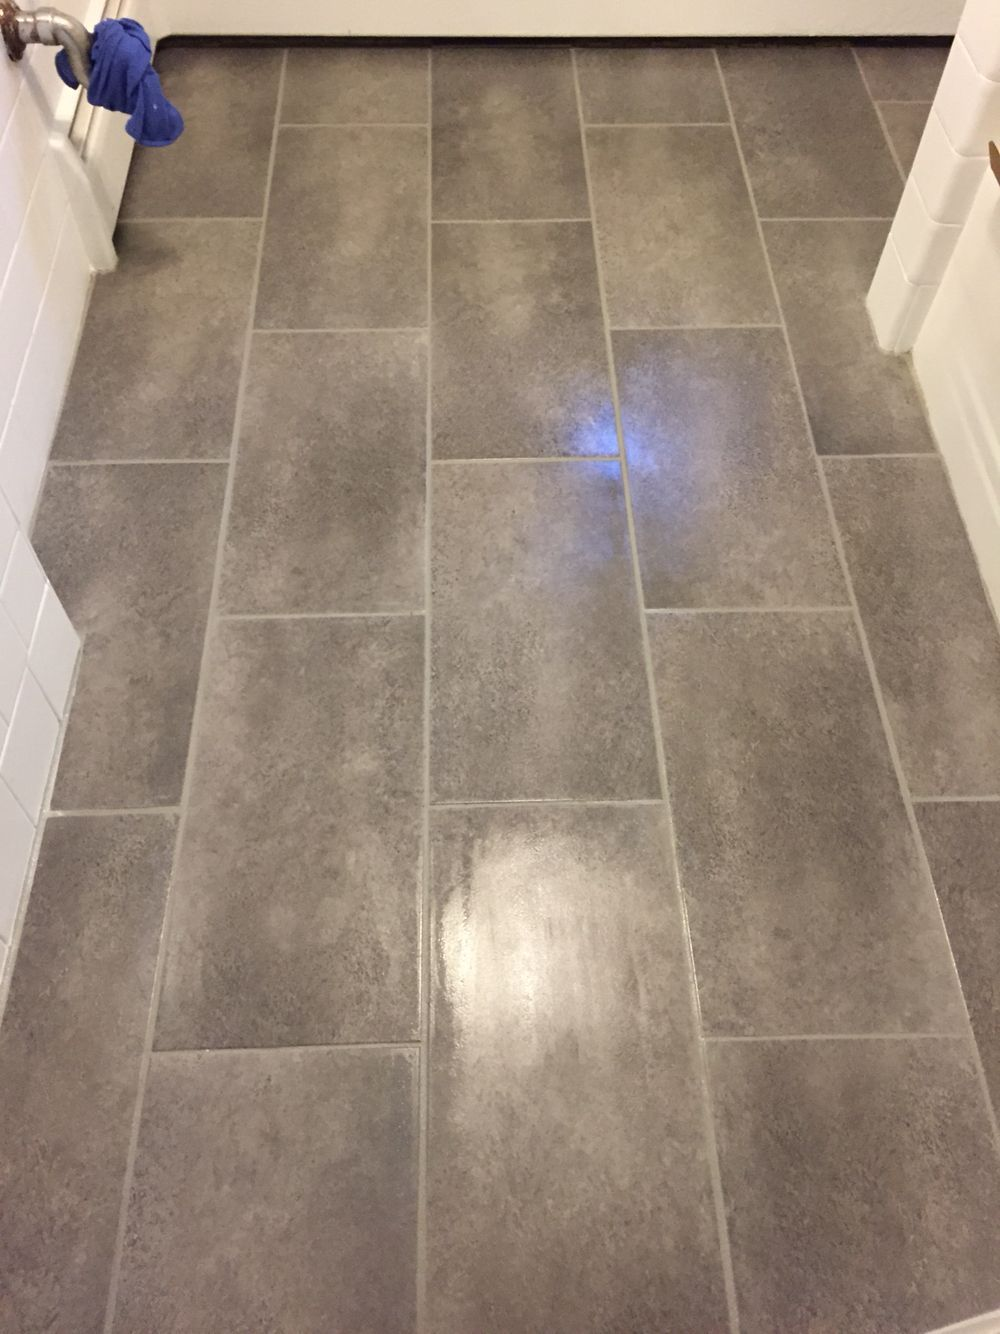 Home Depot TrafficMaster Groutable Vinyl Tile Coastal Grey ...